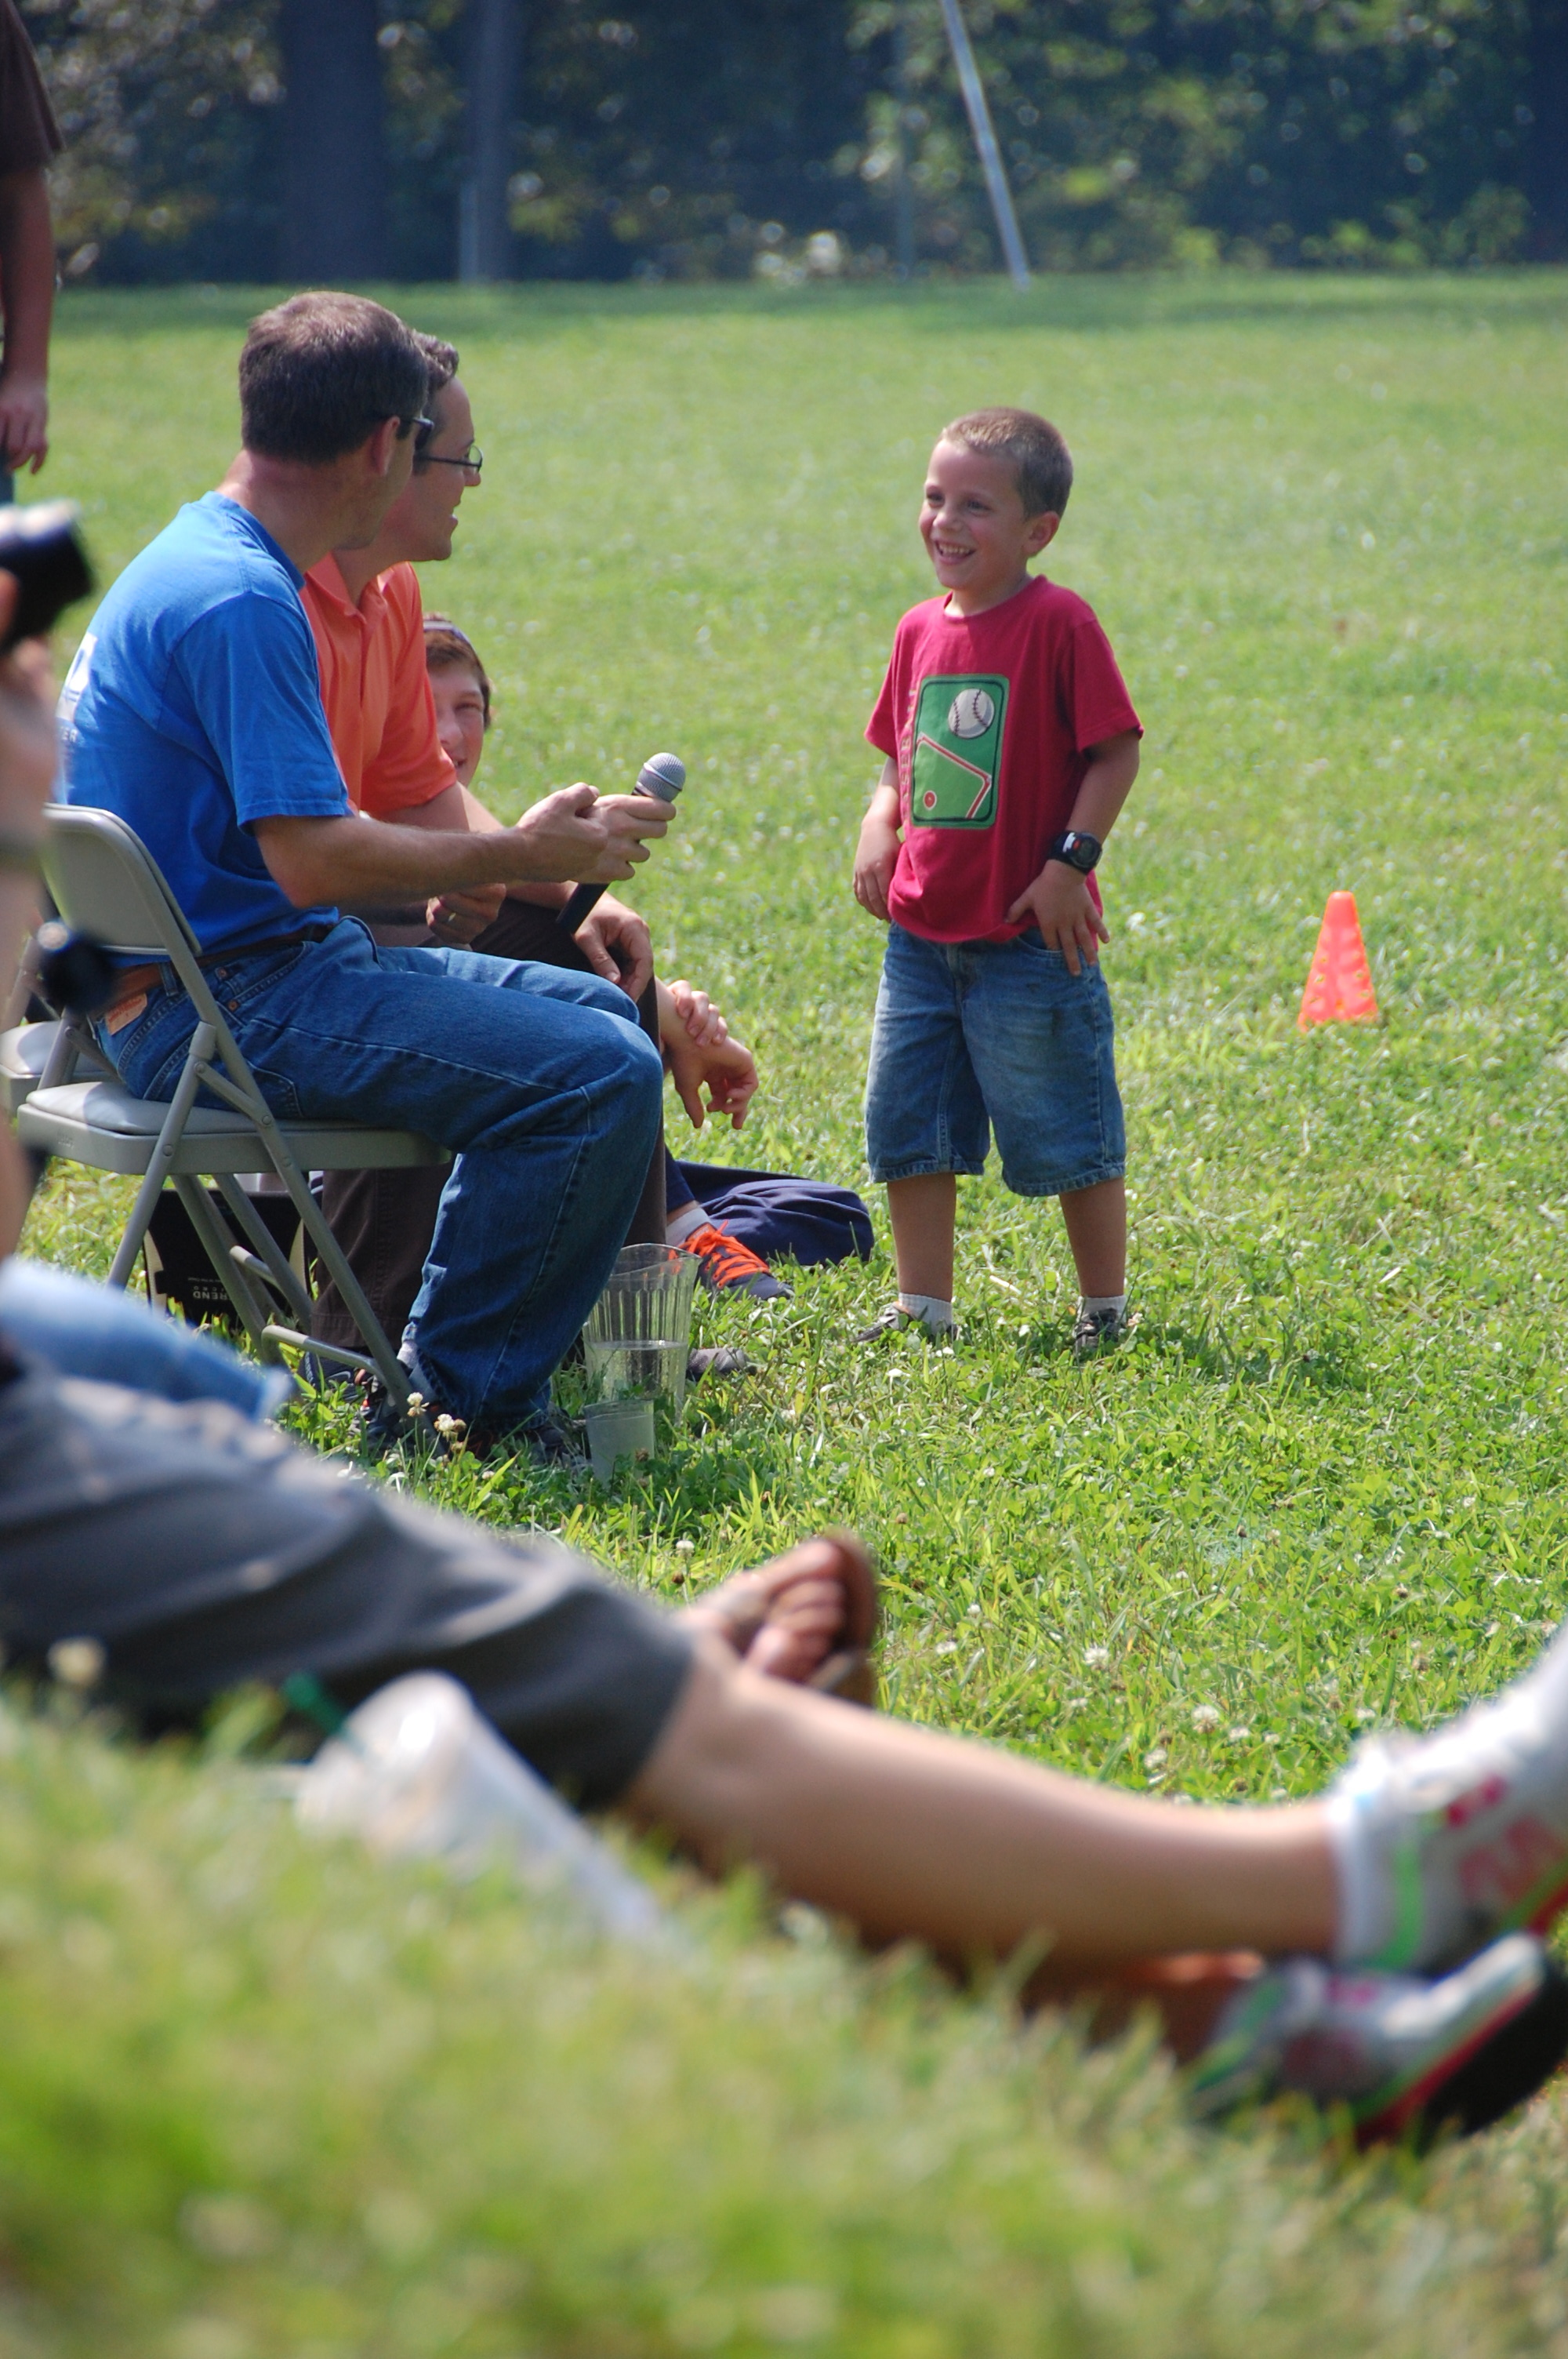 Weldon Stogsdill & David Rutt interviewing Bryant about how you win at Tug-O-War